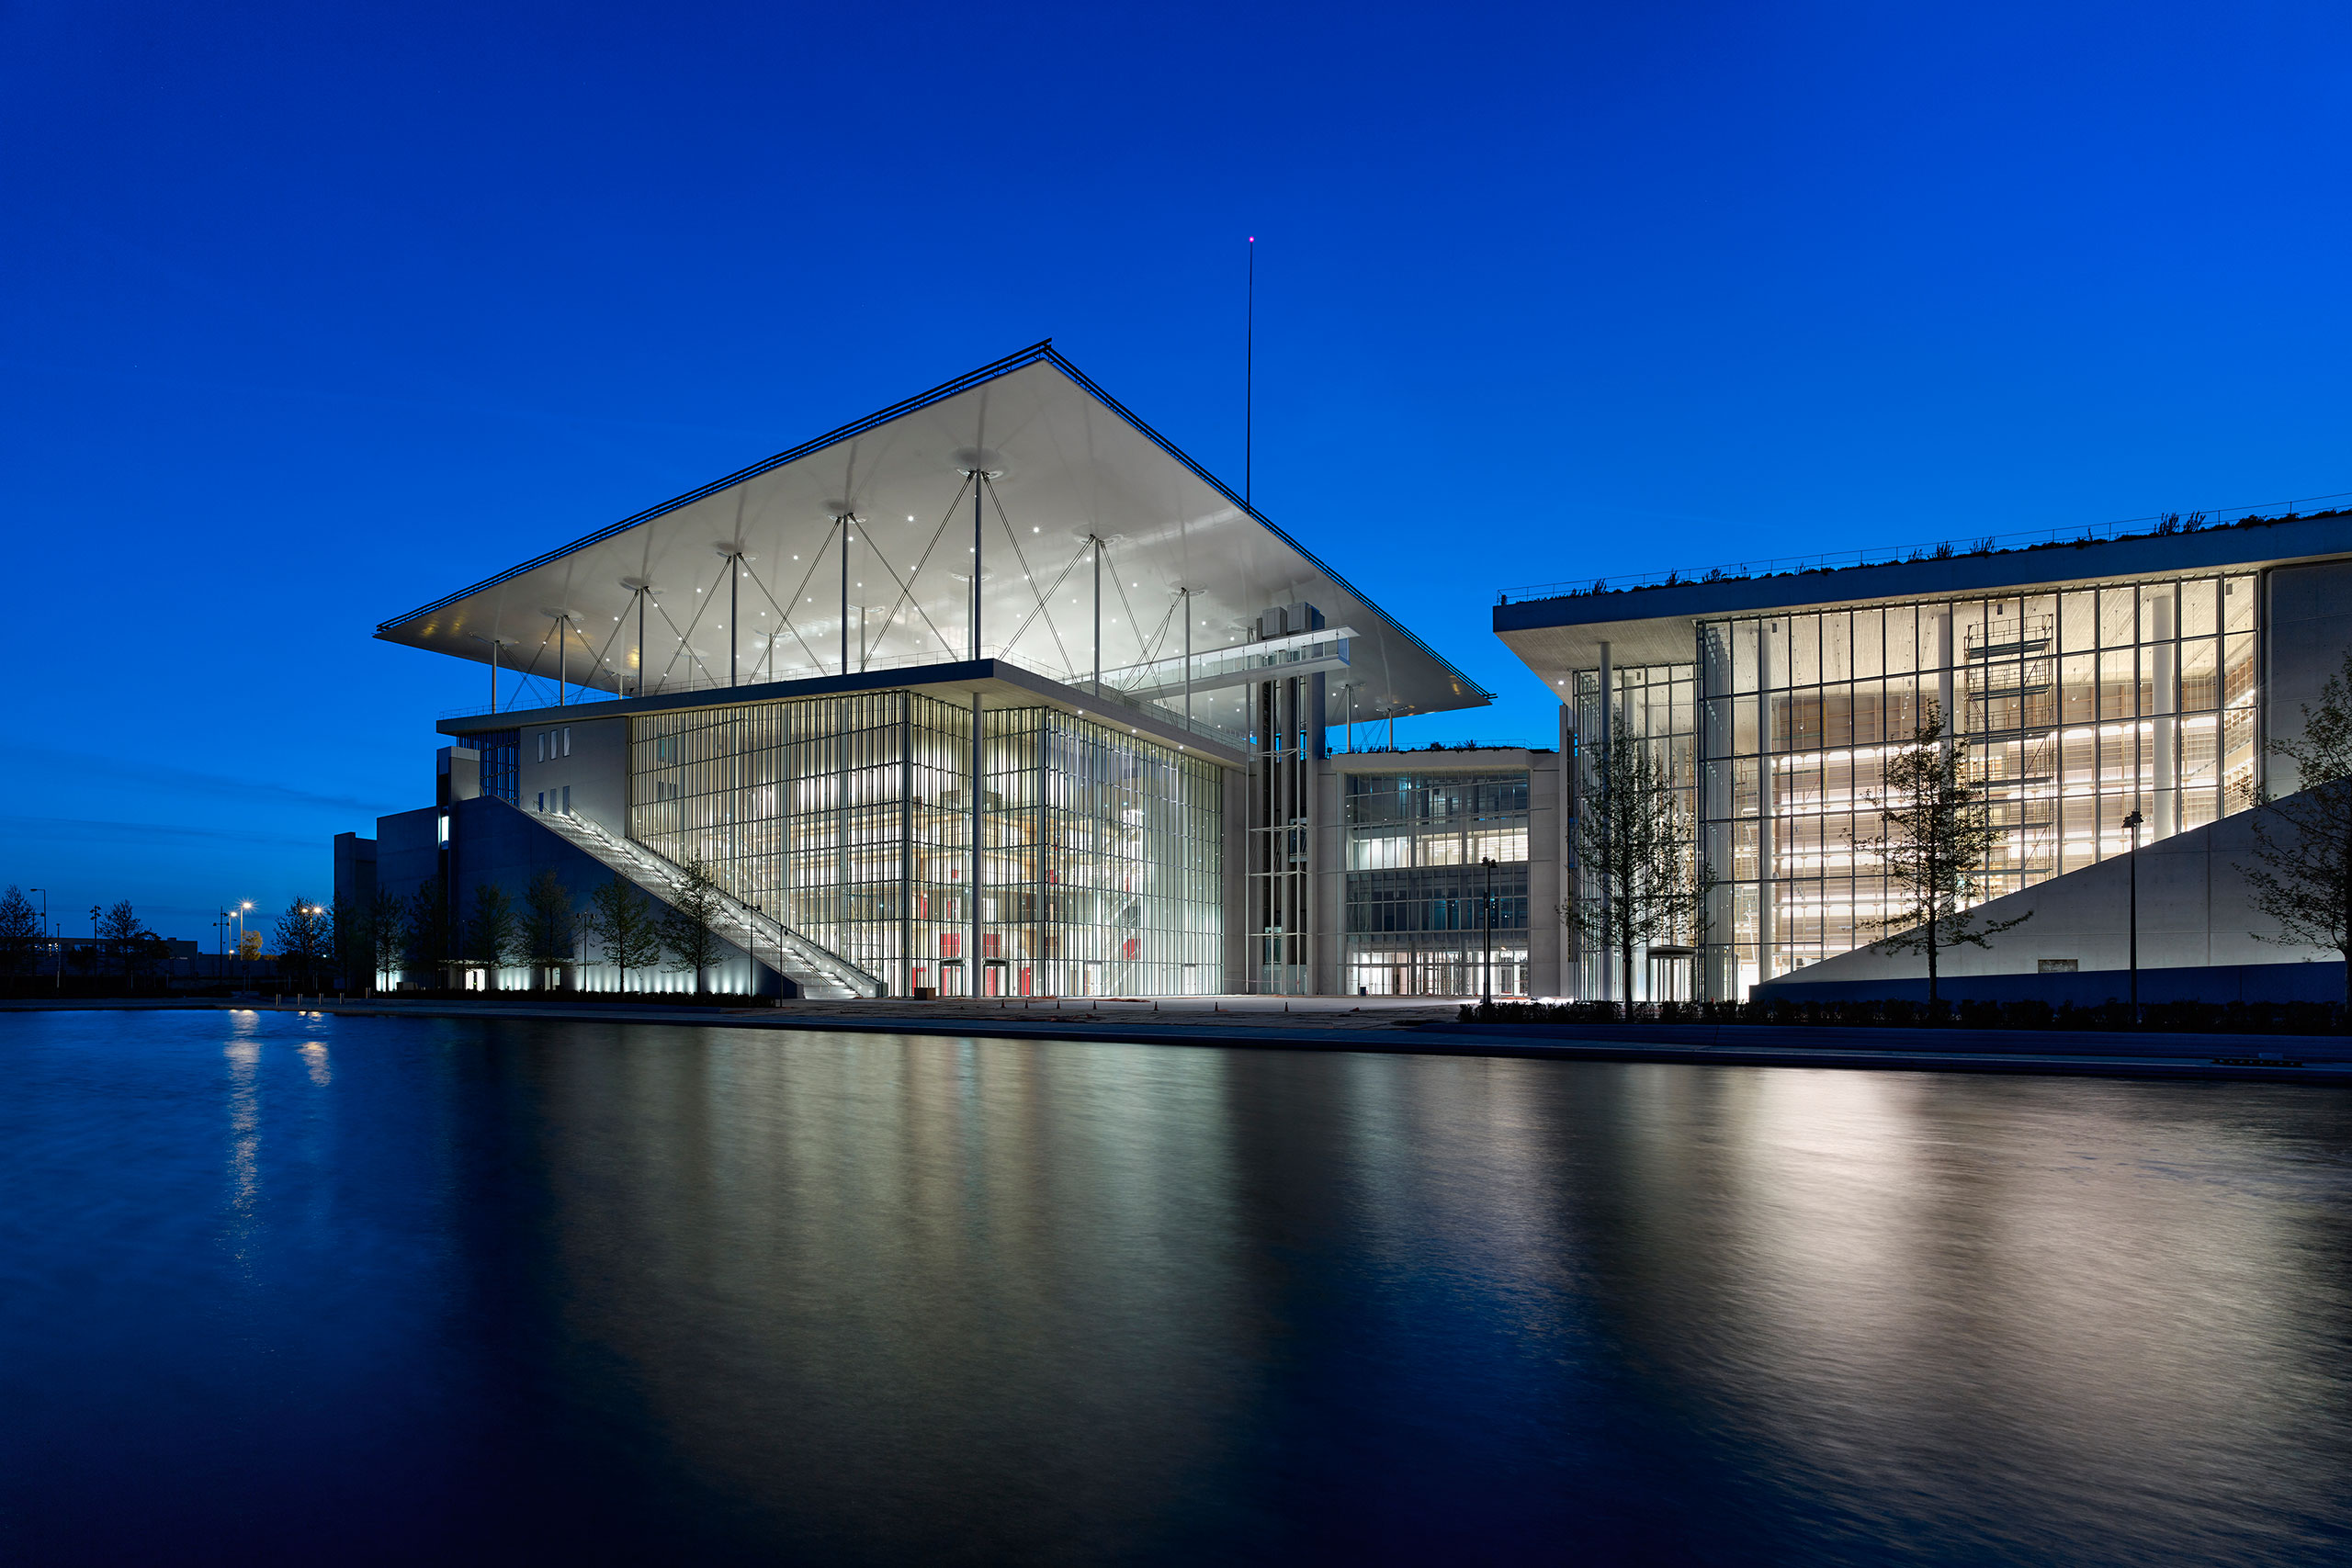 Night view of the SNFCC. Photo © SNFCC / Yiorgis Yerolymbos.